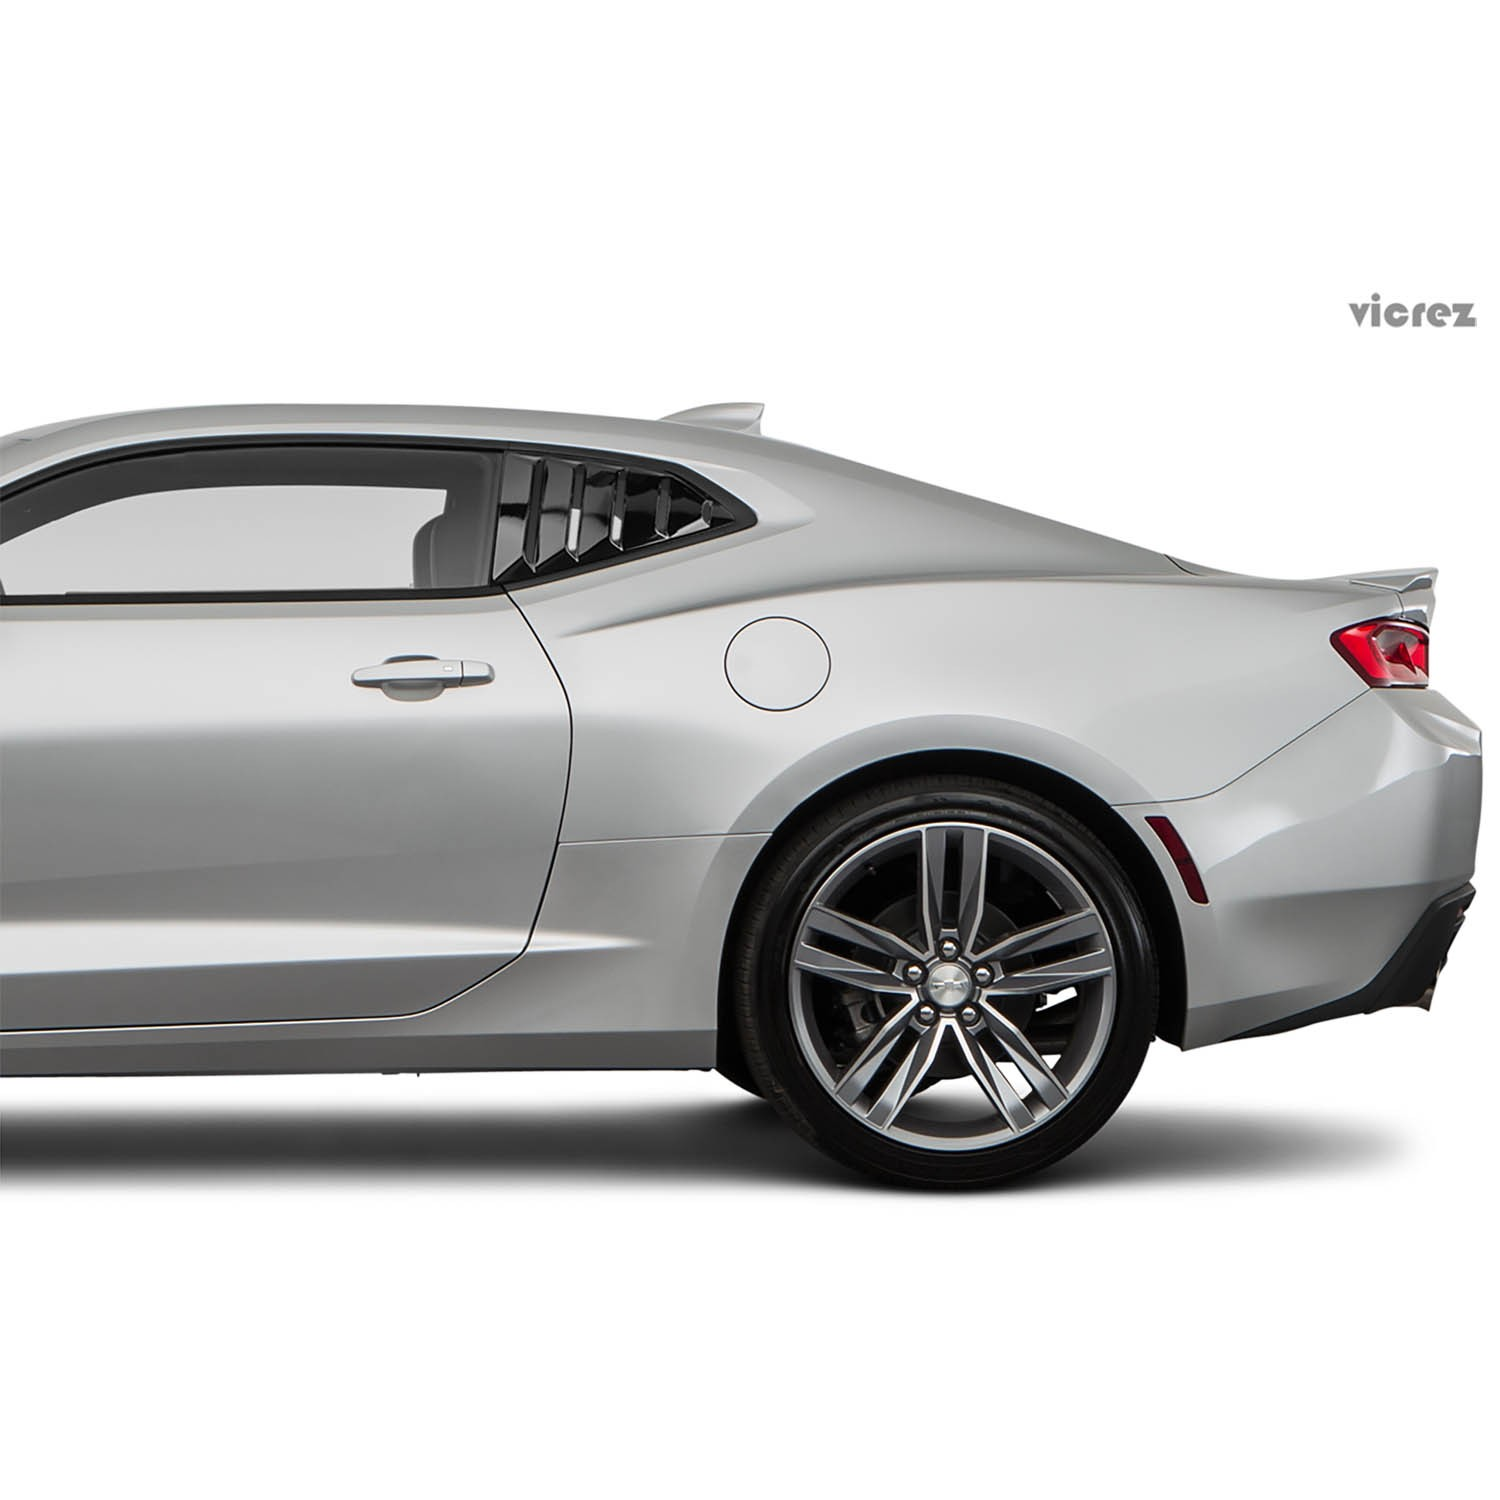 Vicrez LV Quarter Window Louvers vz101691 | Chevrolet Camaro 2016-2019